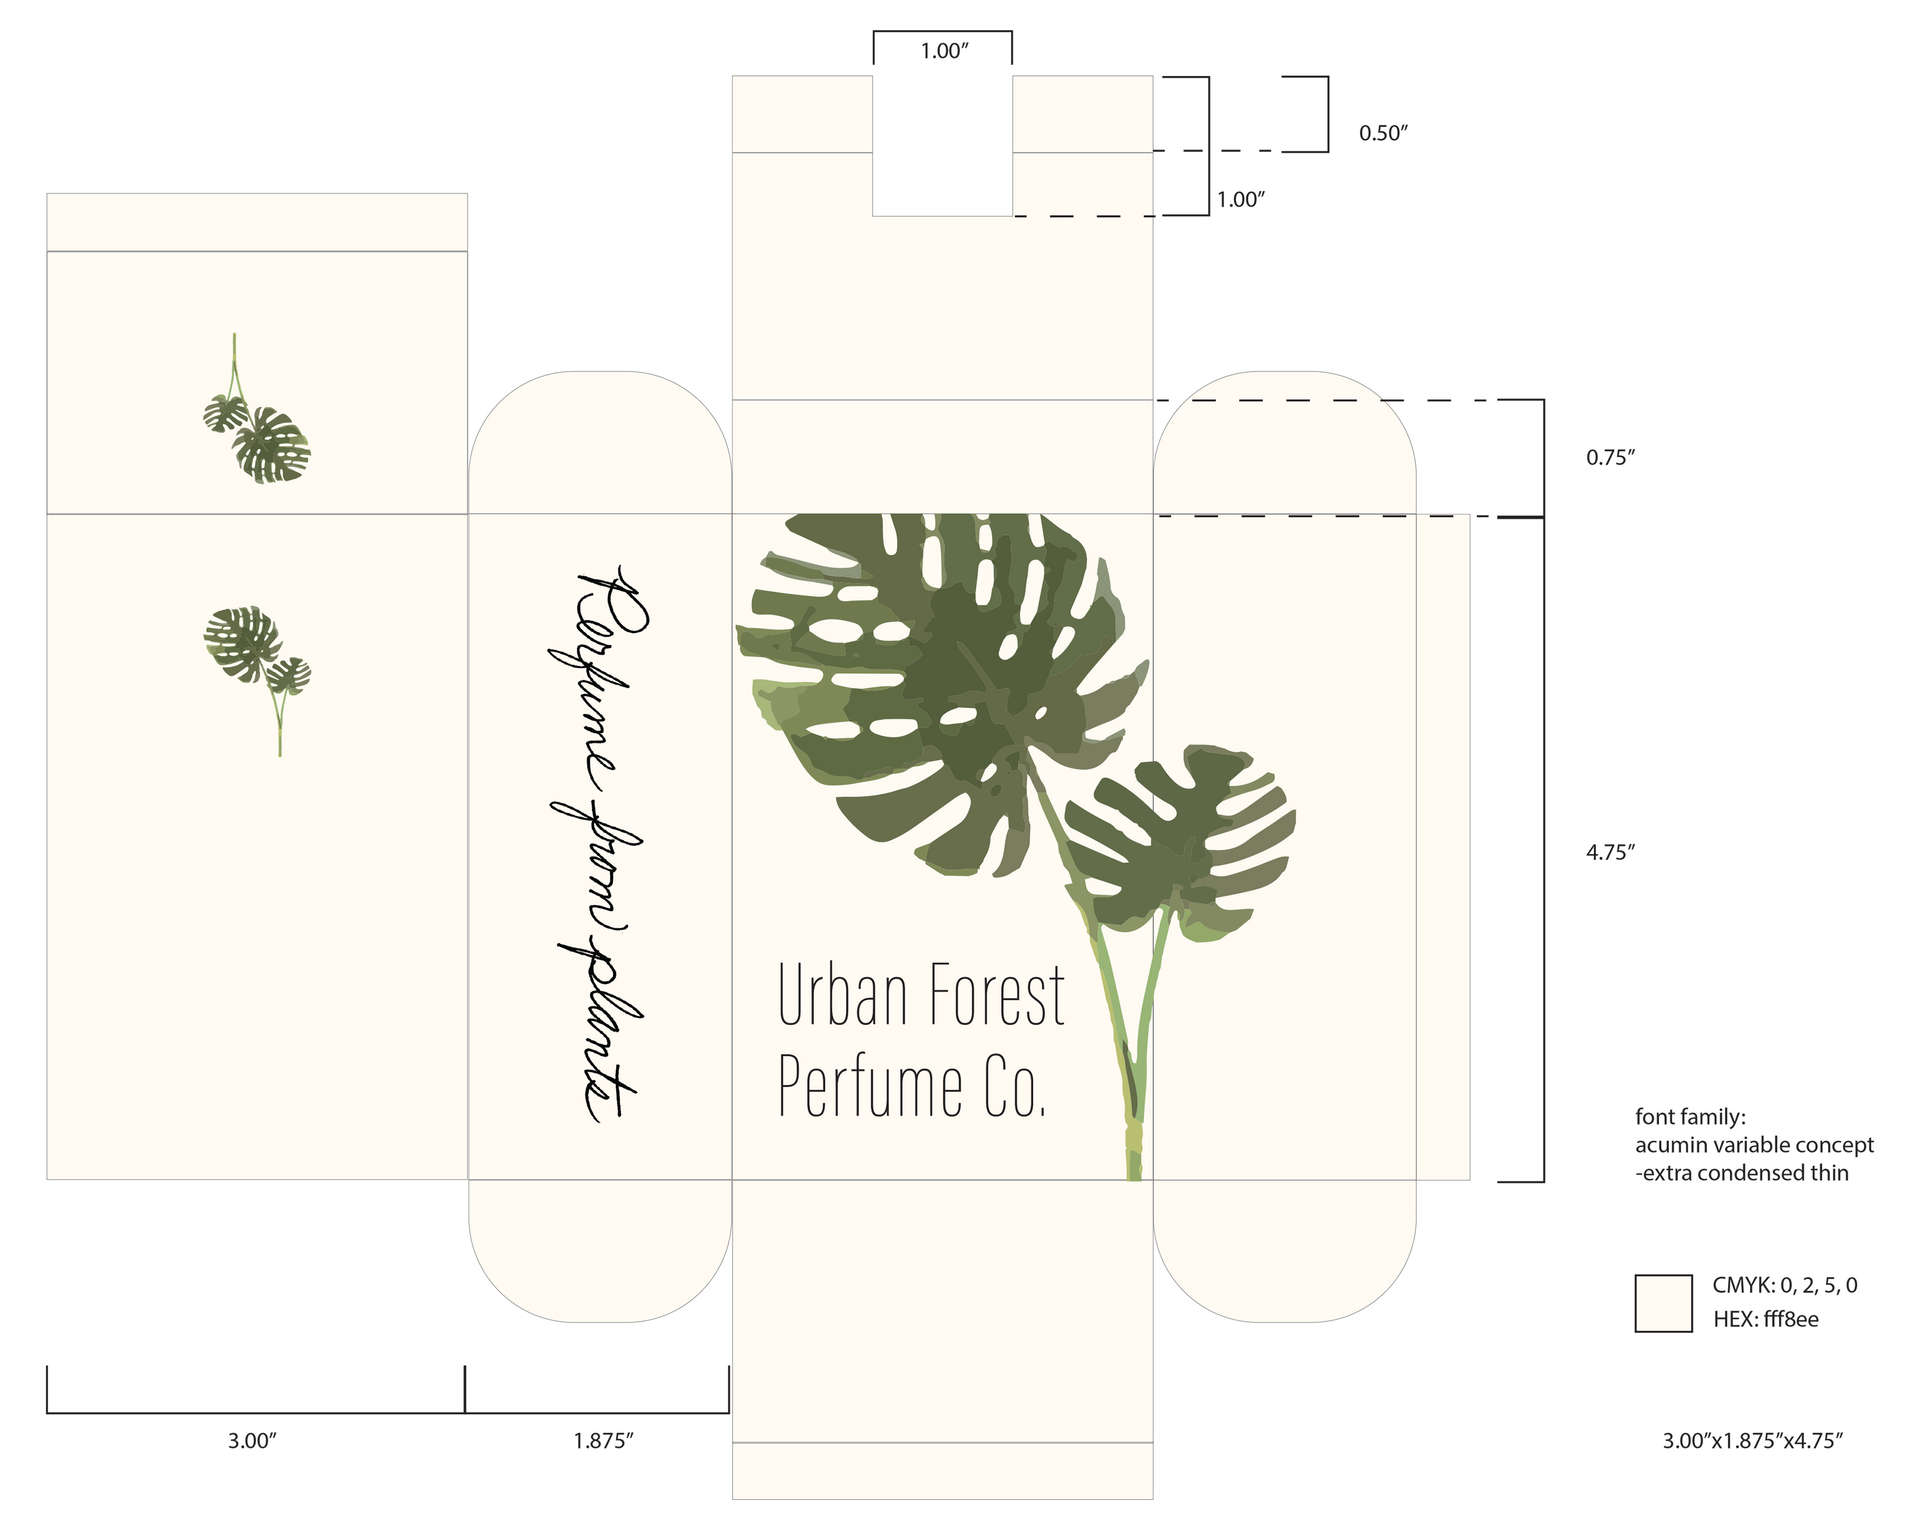 URBAN FOREST PERFUME CO.